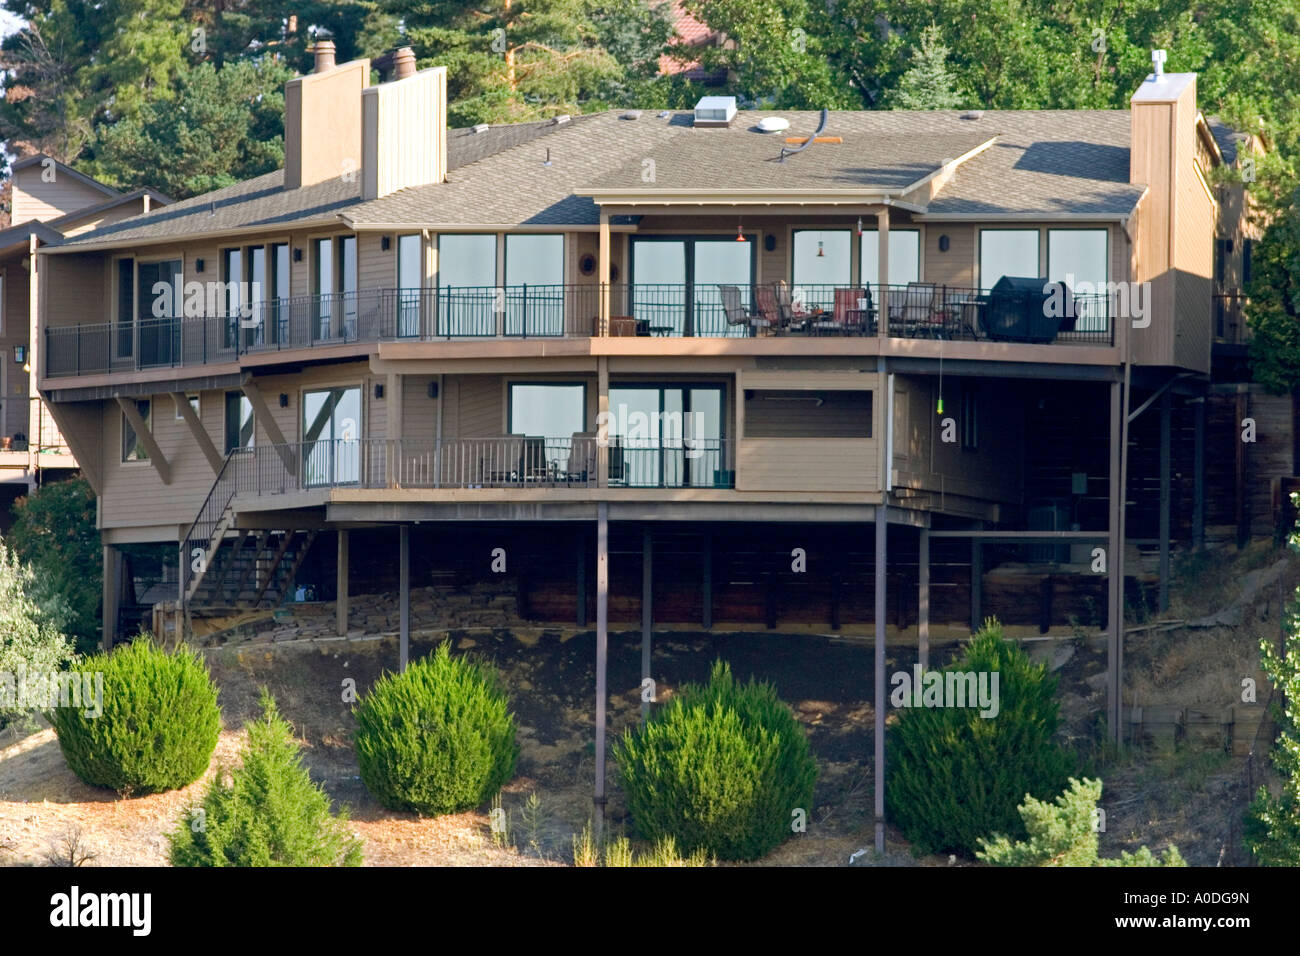 House on stilts hillside images for Stilt house foundation